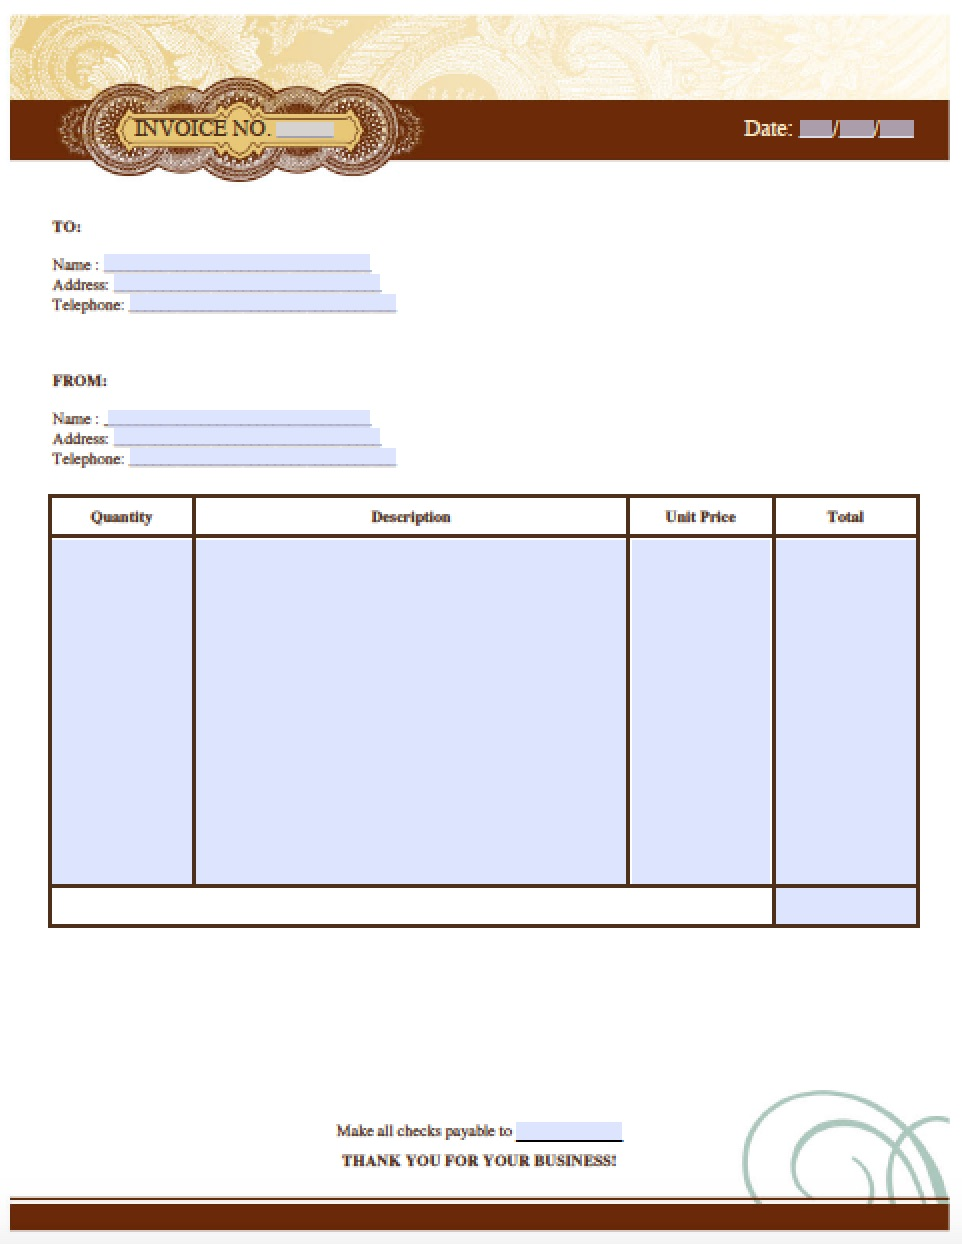 Free Artist Invoice Template Excel PDF Word Doc - How to make invoice in excel for service business